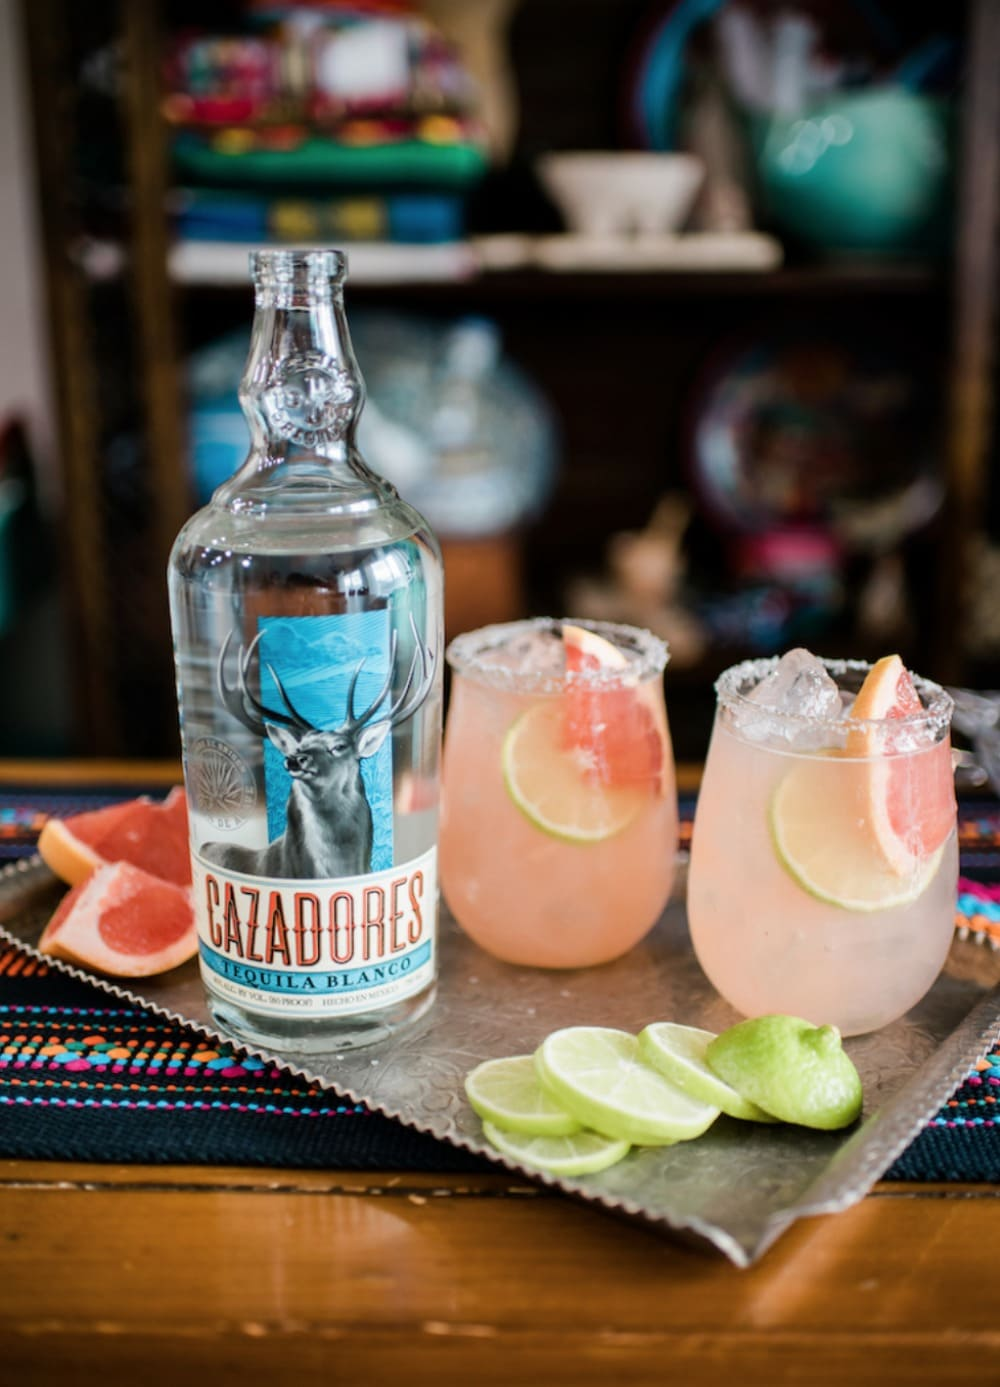 Highland Margarita next to a bottle of Cazadores Tequila.